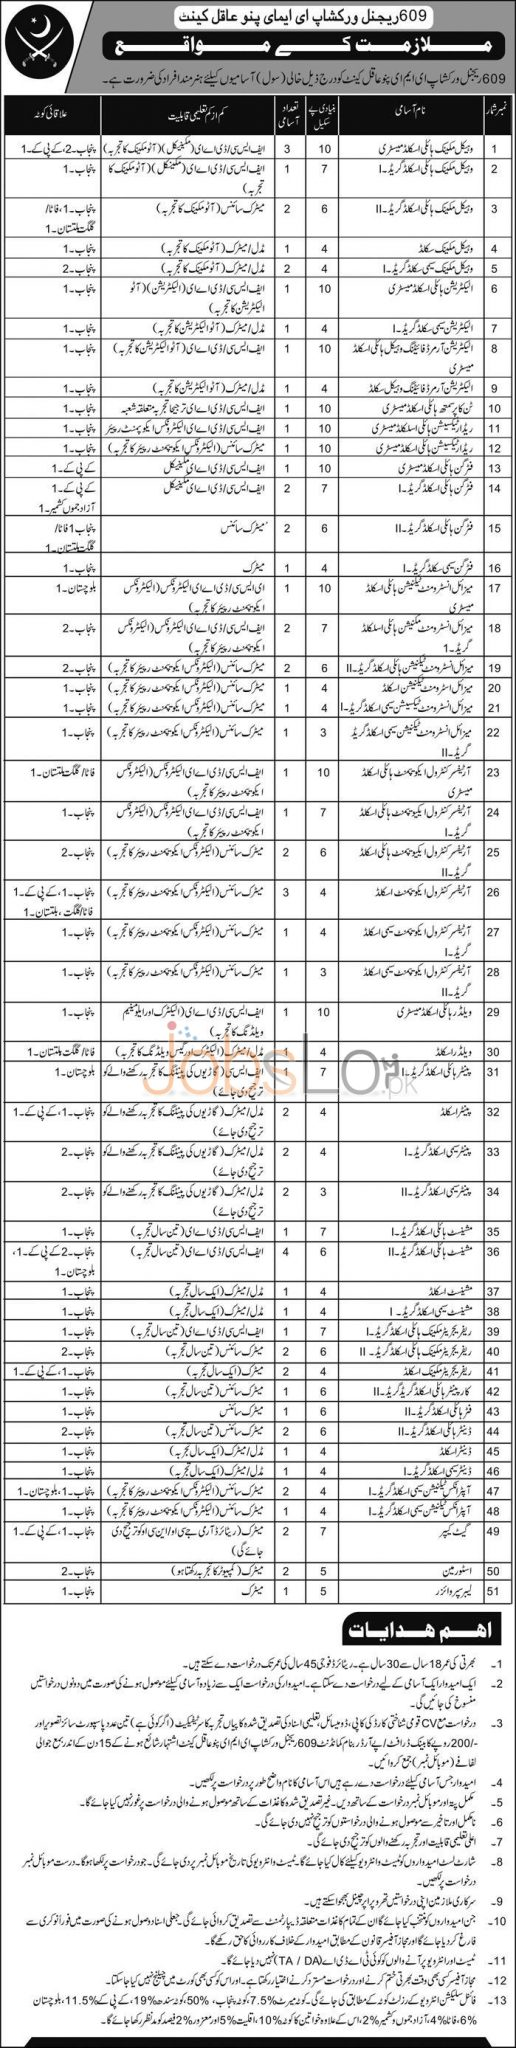 Pak Army 609 Regional Workshop EME Jobs